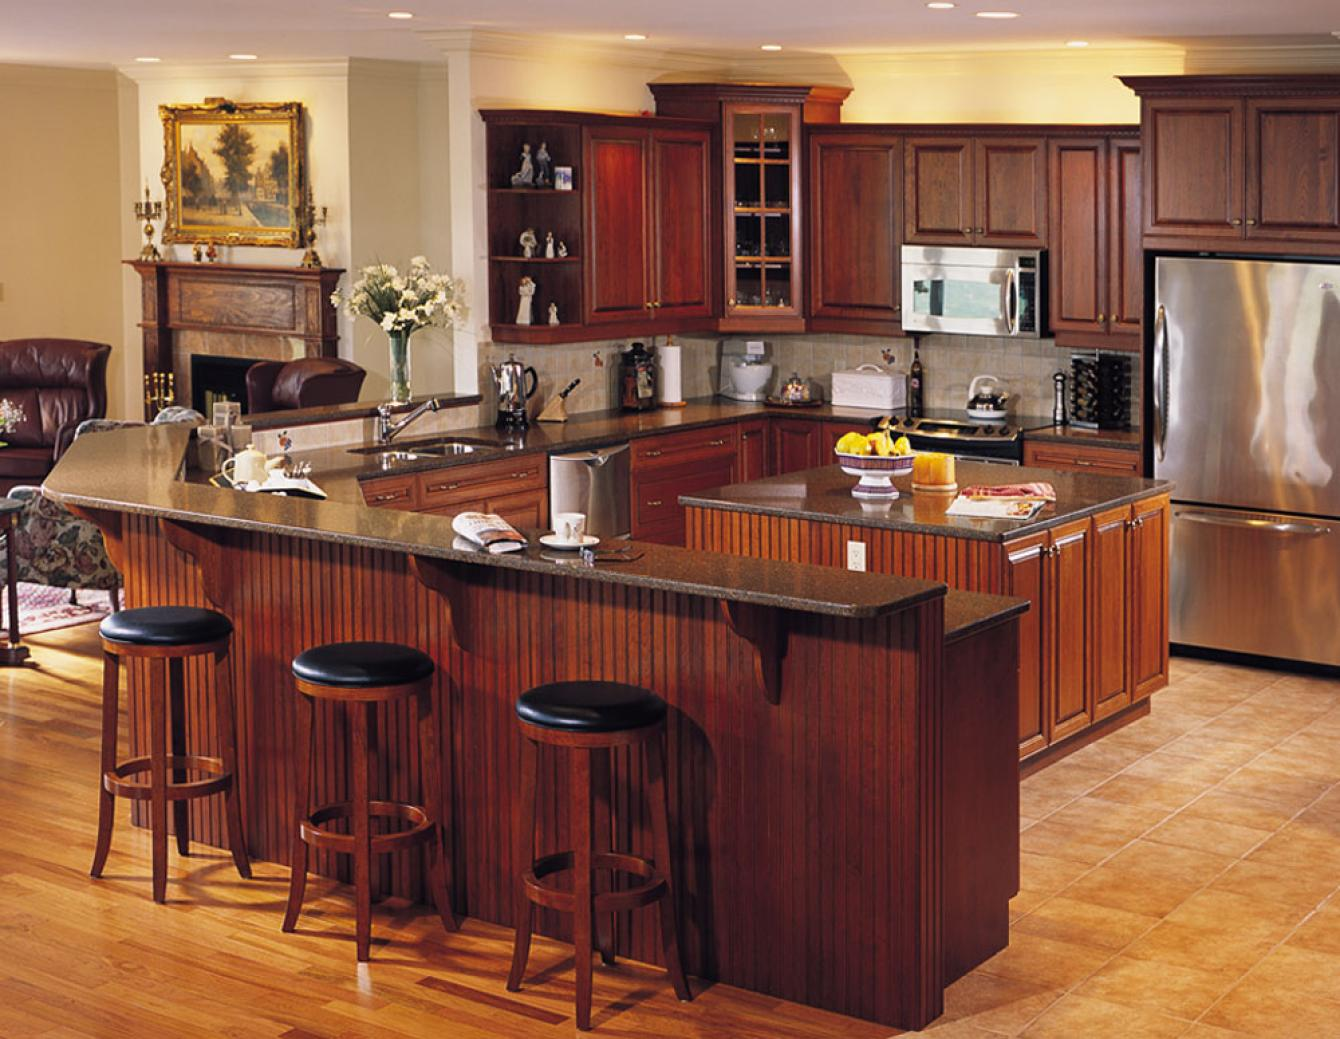 Kitchen design gallery triangle kitchen Good kitchen design images